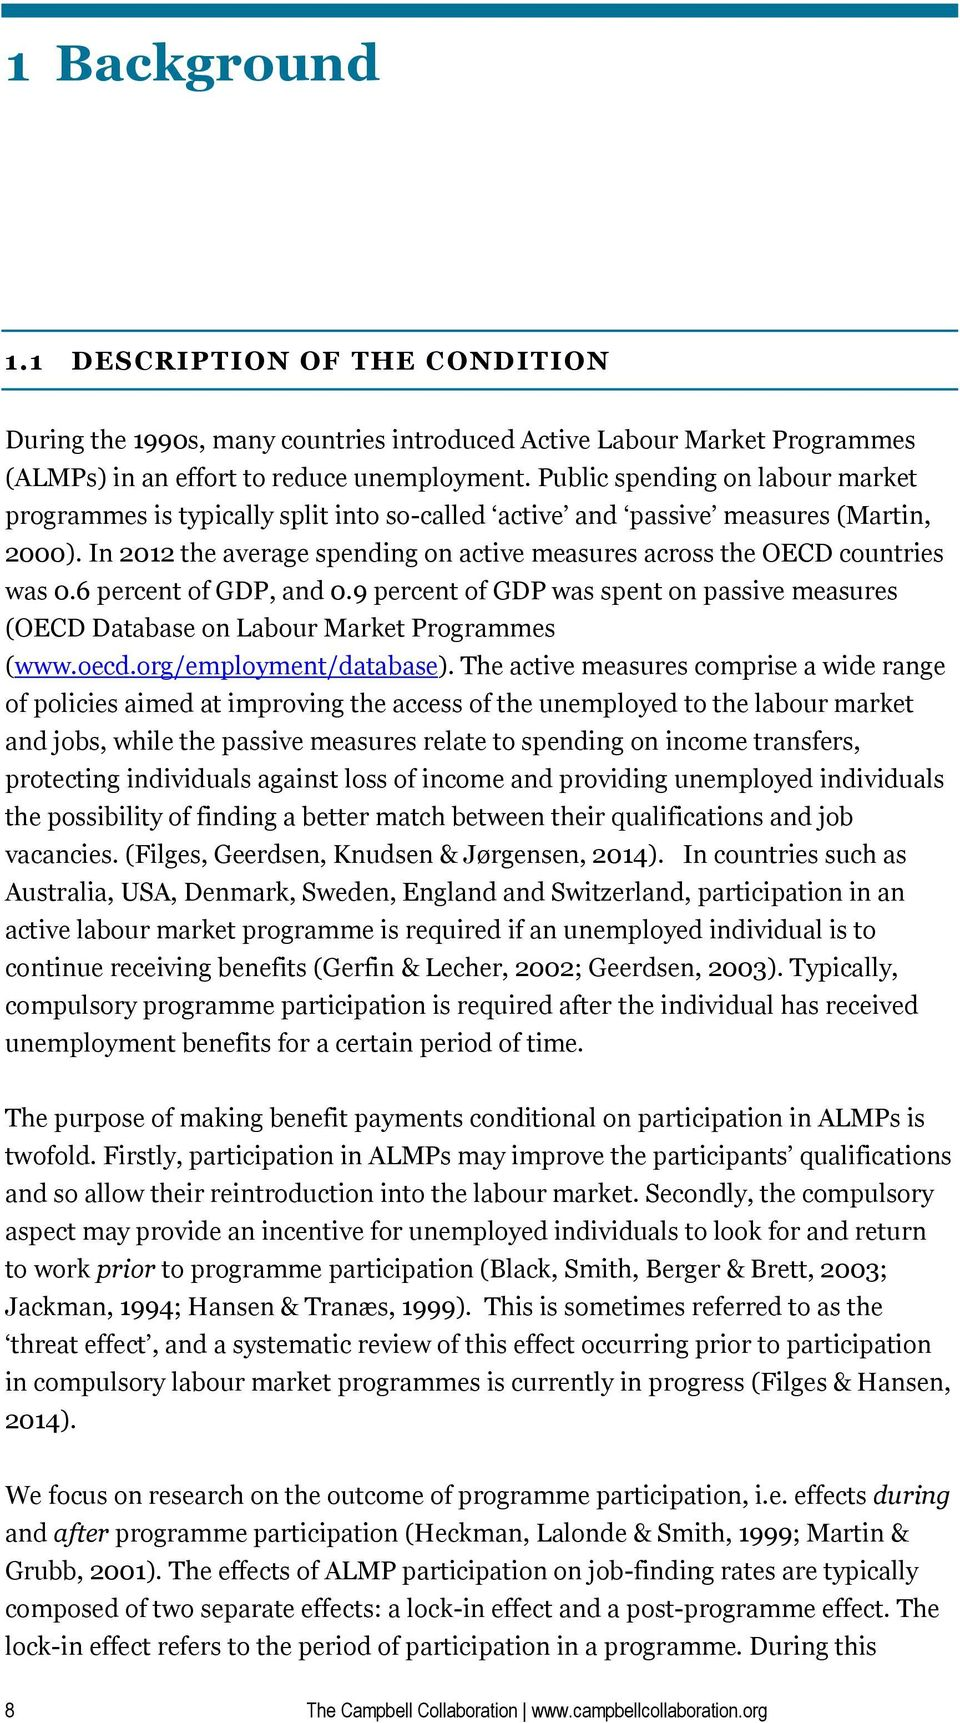 In 2012 the average spending on active measures across the OECD countries was 0.6 percent of GDP, and 0.9 percent of GDP was spent on passive measures (OECD Database on Labour Market Programmes (www.